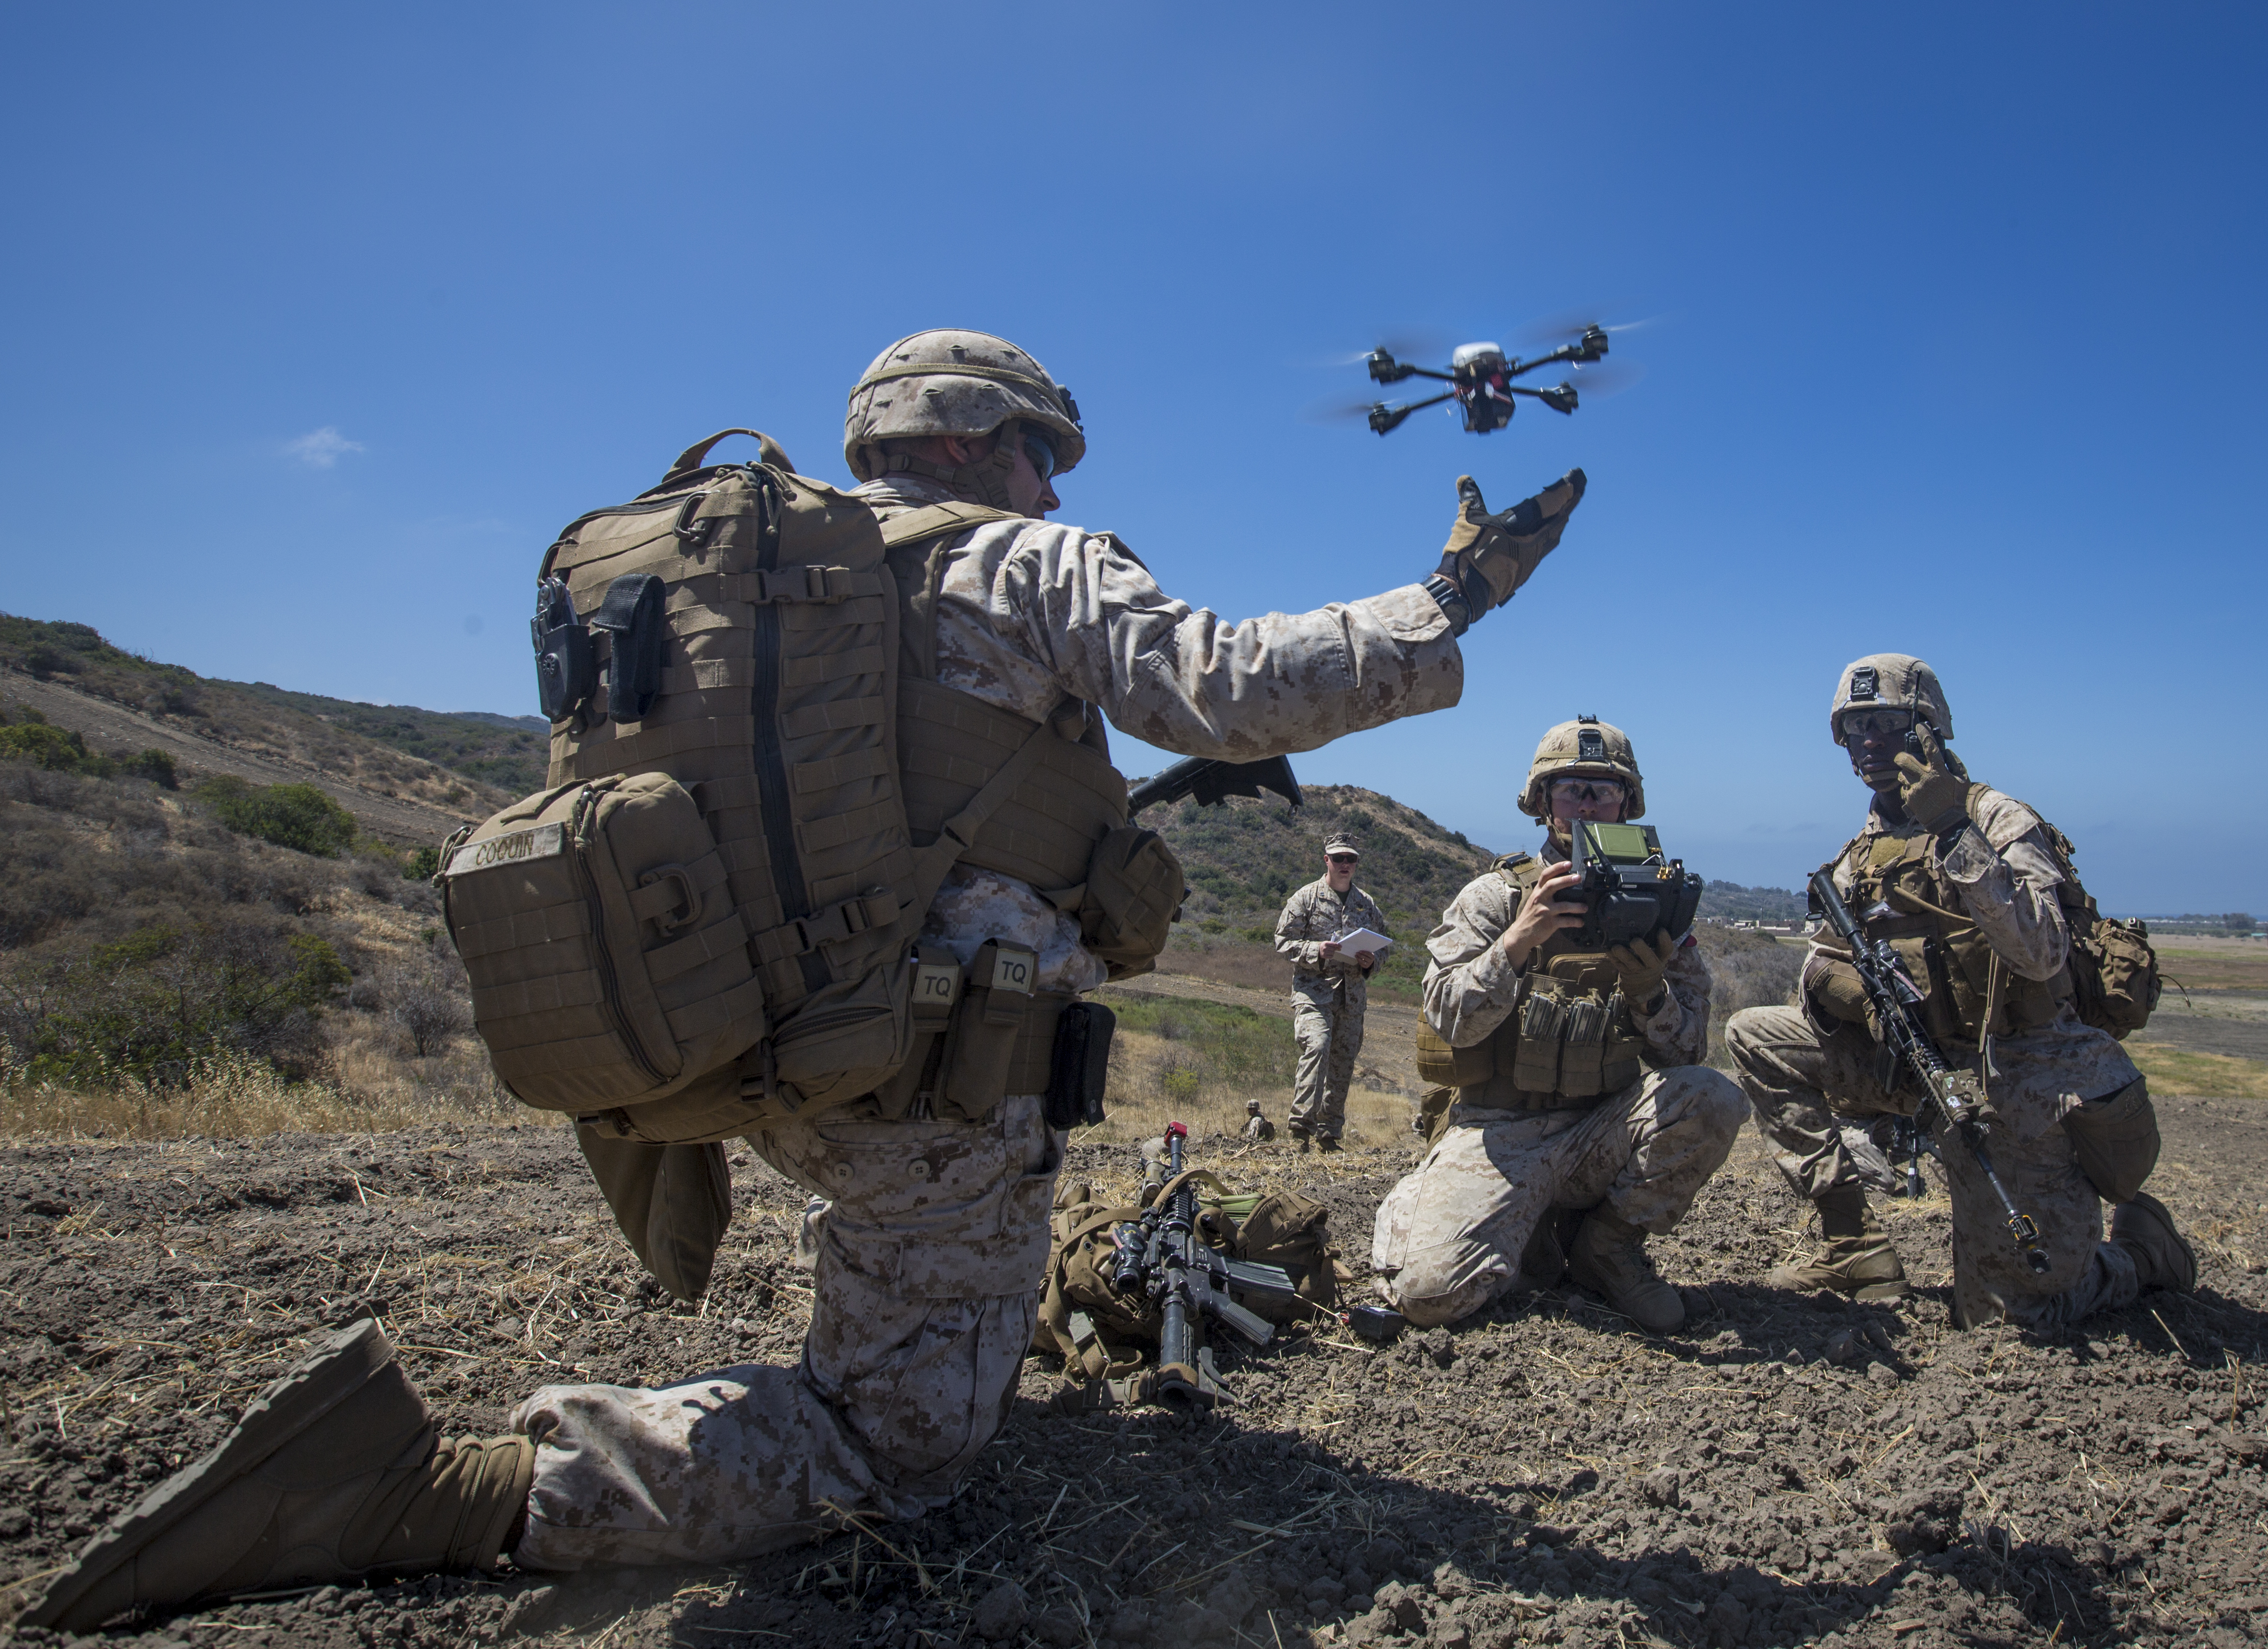 Marine Lance Cpl. Benjamin Cartwright launches the Instant Eye MK-2 Gen 3 unmanned aerial system during an exercise for Marine Corps Warfighting Laboratory's Marine Air-Ground Task Force Integrated Experiment  on Camp Pendleton, Calif., July 9, 2016